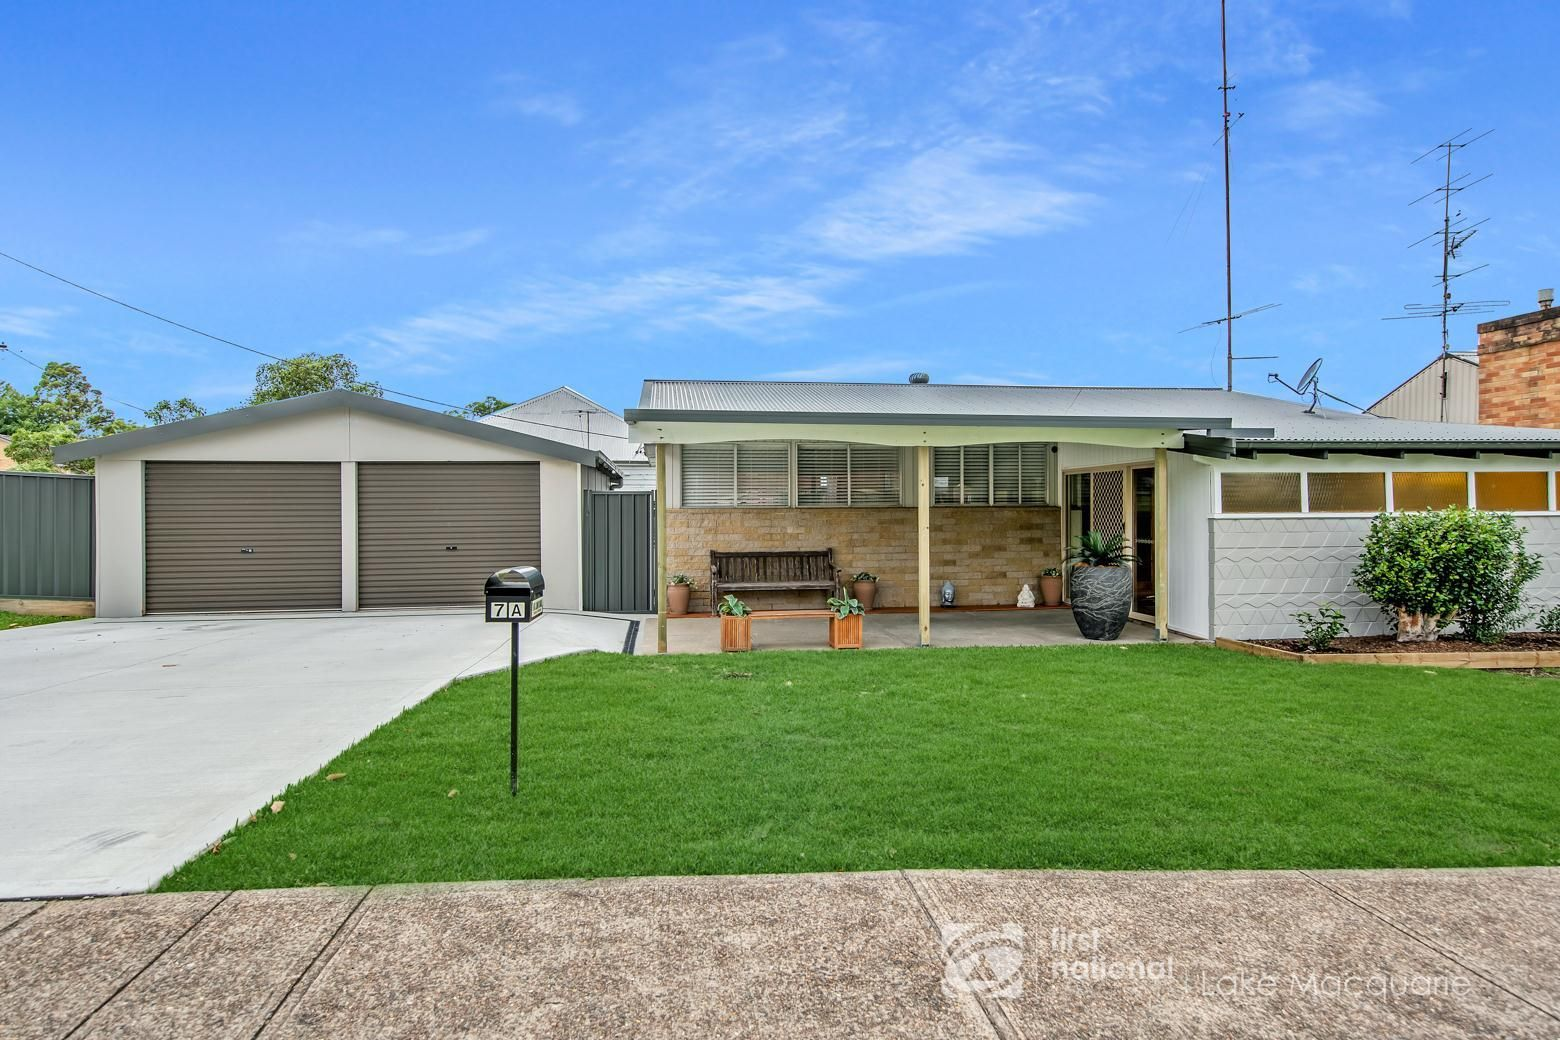 7A Withers Street, West Wallsend NSW 2286, Image 0